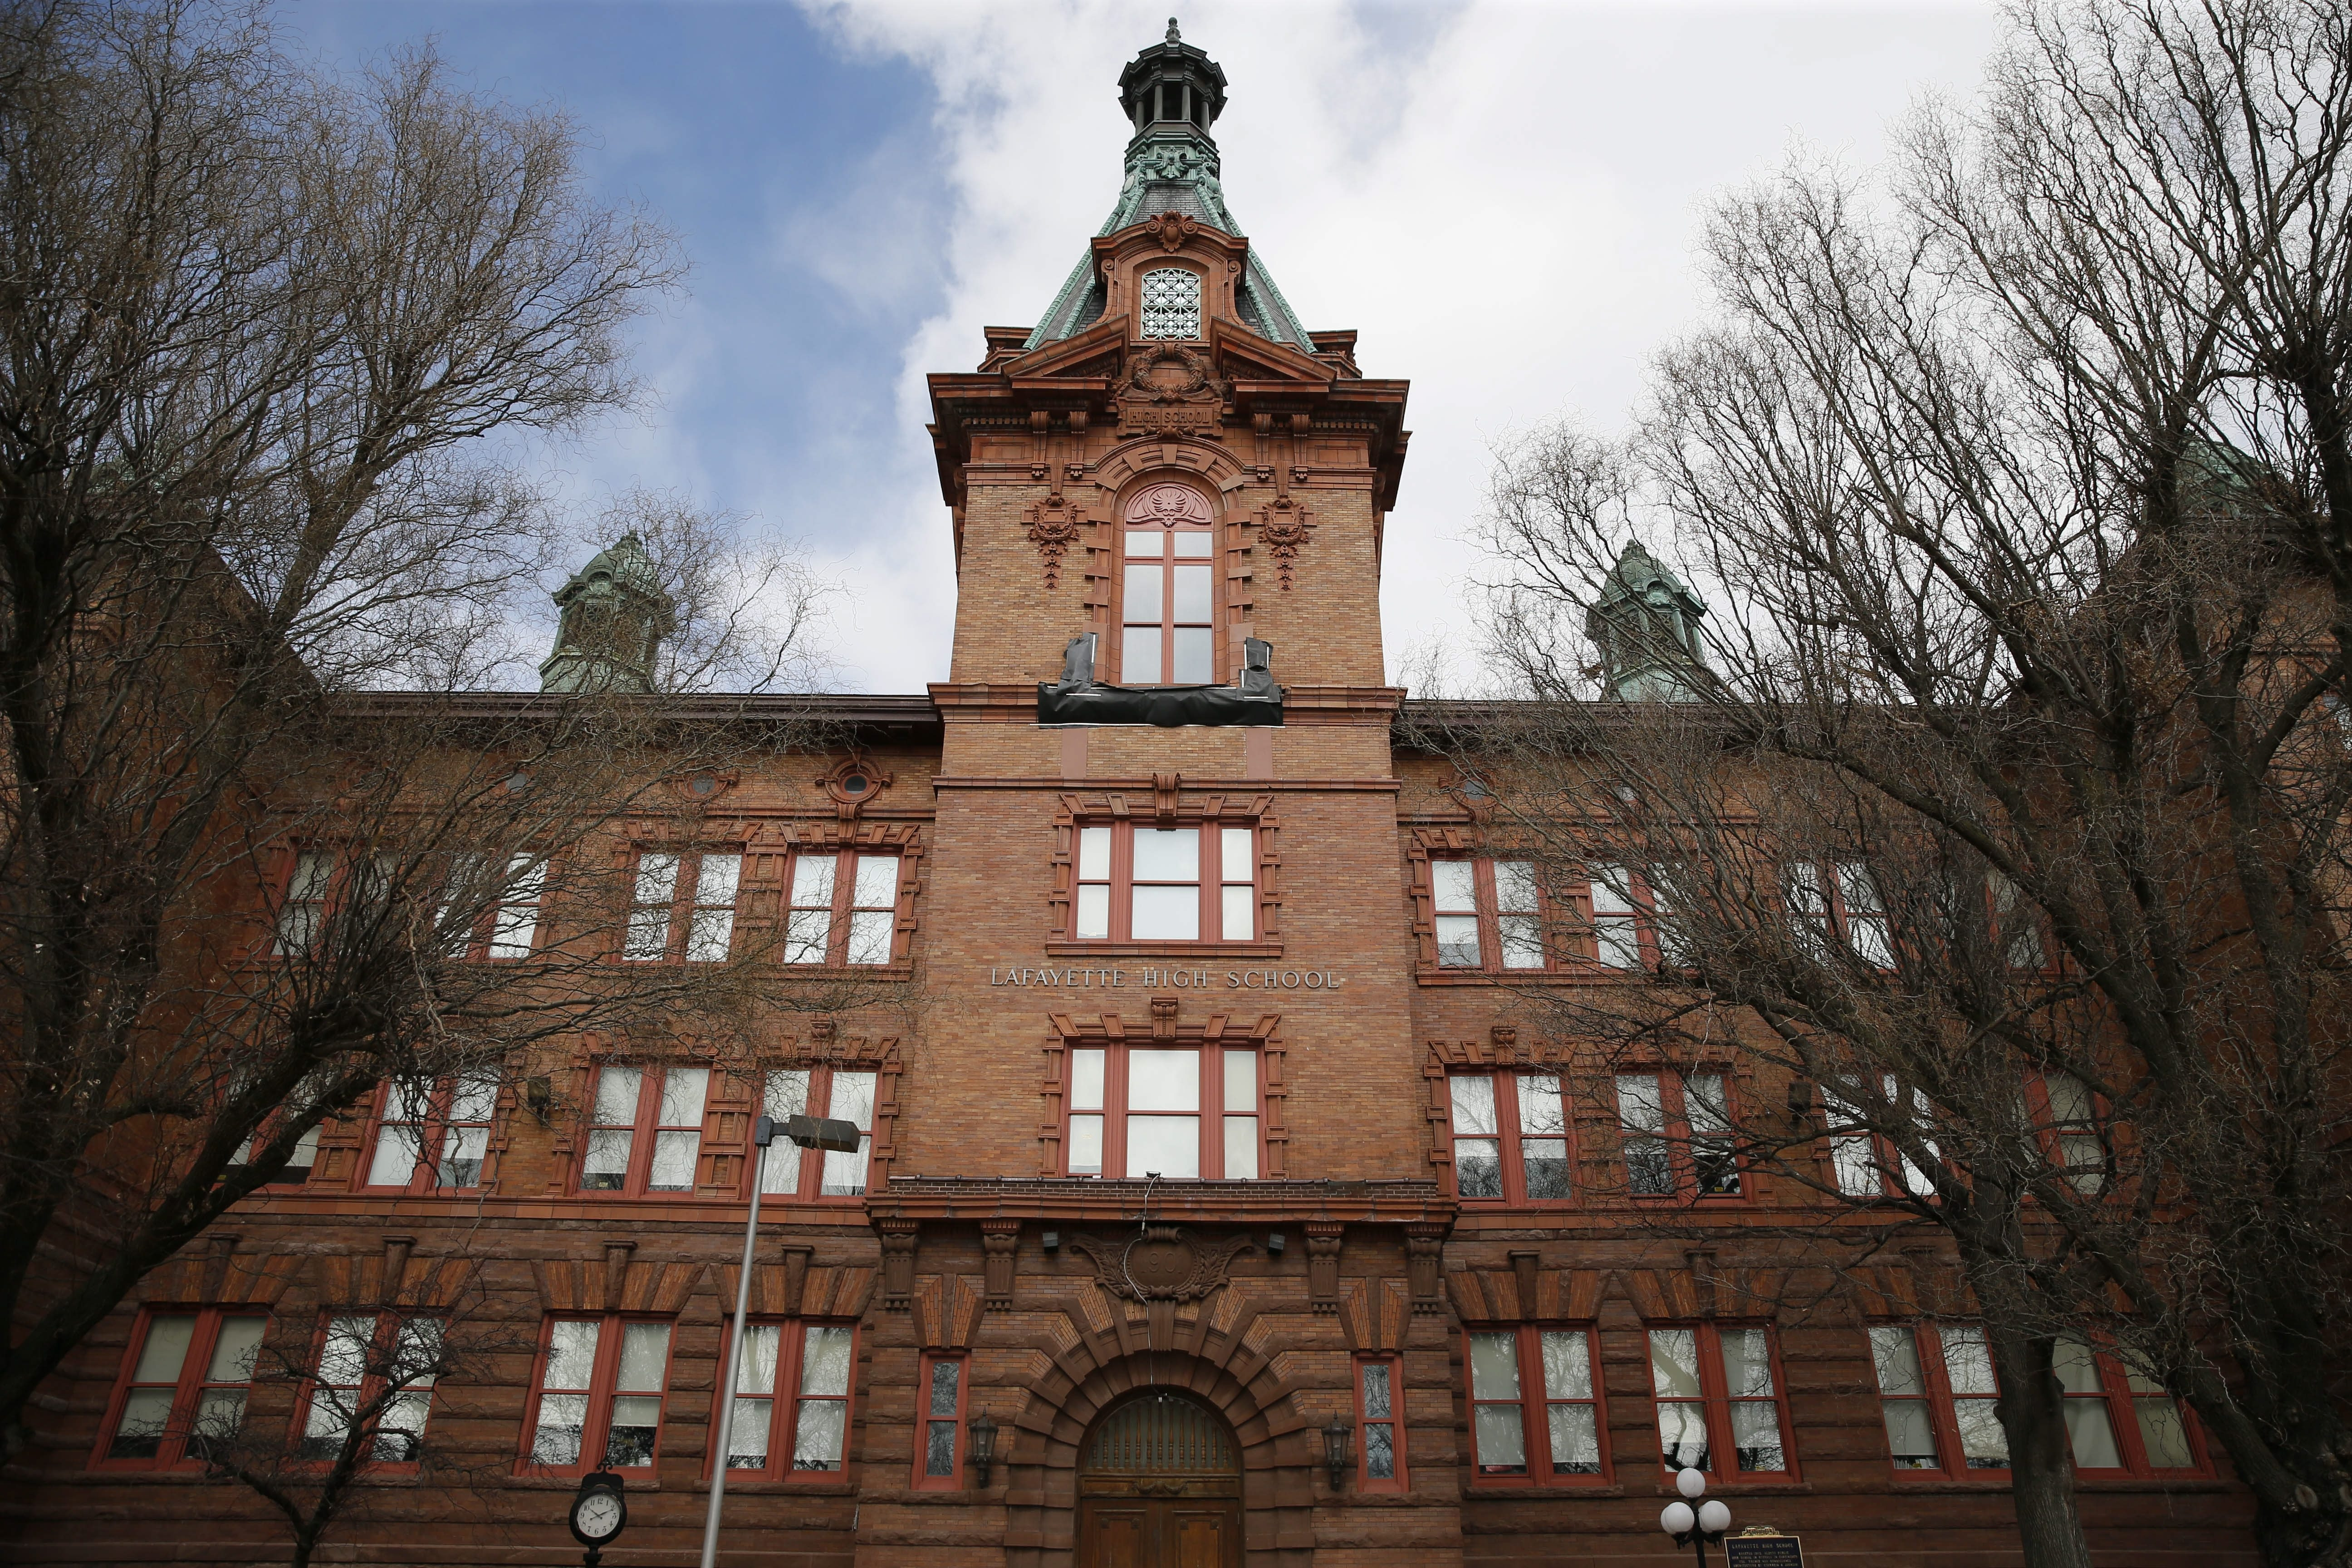 Lafayette High School has a large population of immigrant students, but the International High School in Brooklyn manages to educate a similar student body.